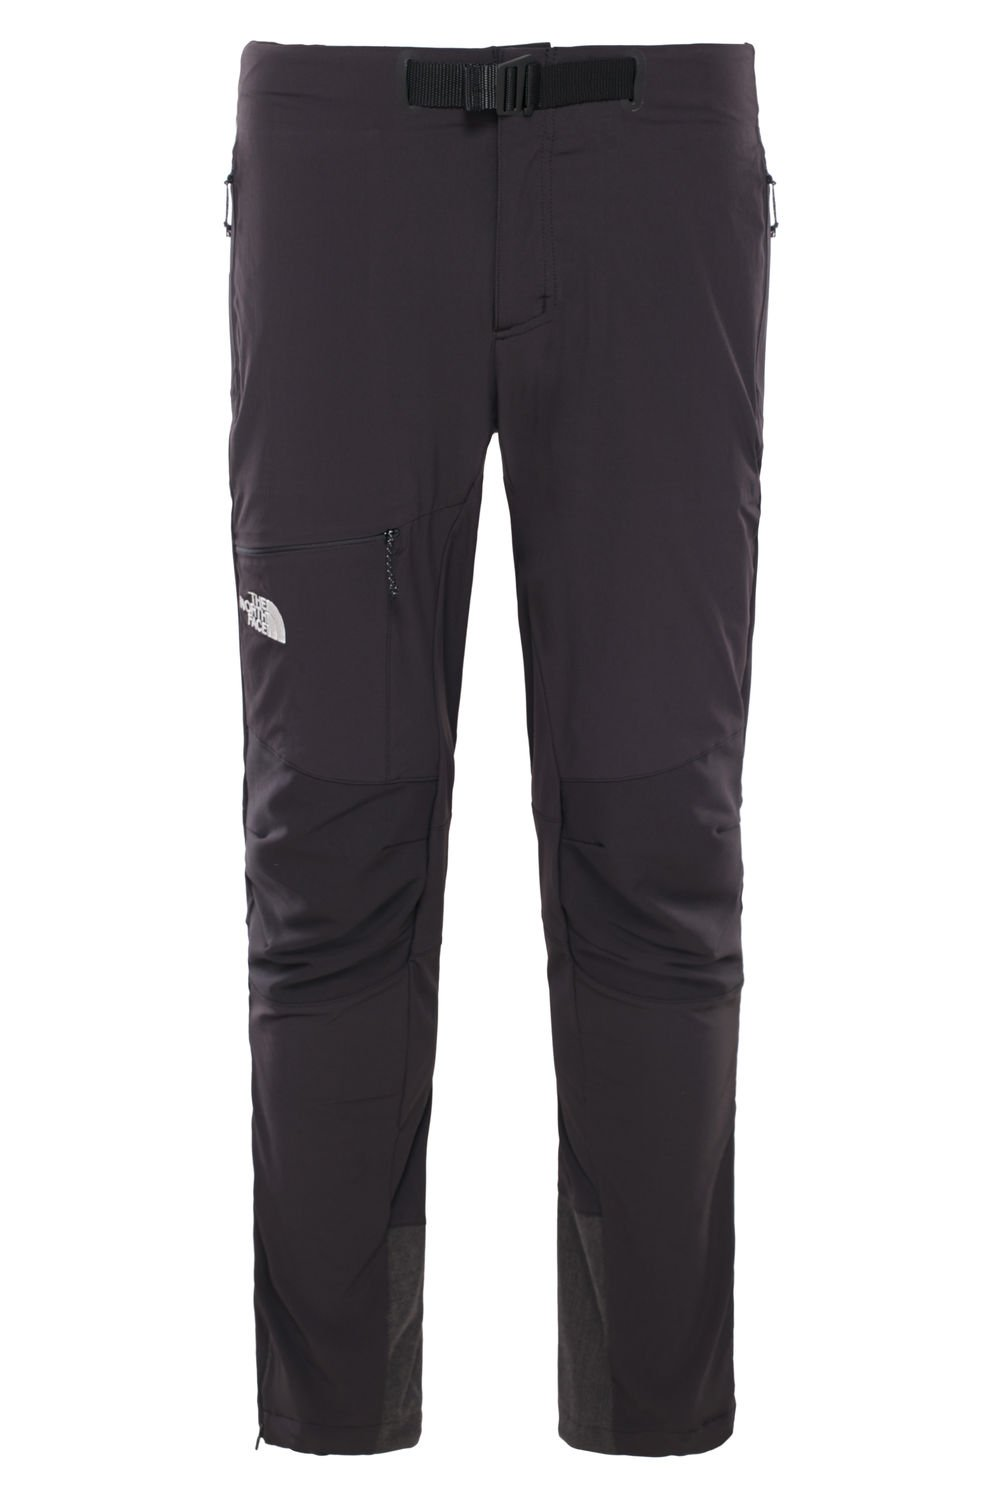 North Face Herren Hose M Asteroid Pants, Tnf Black, 36, 0032546907840